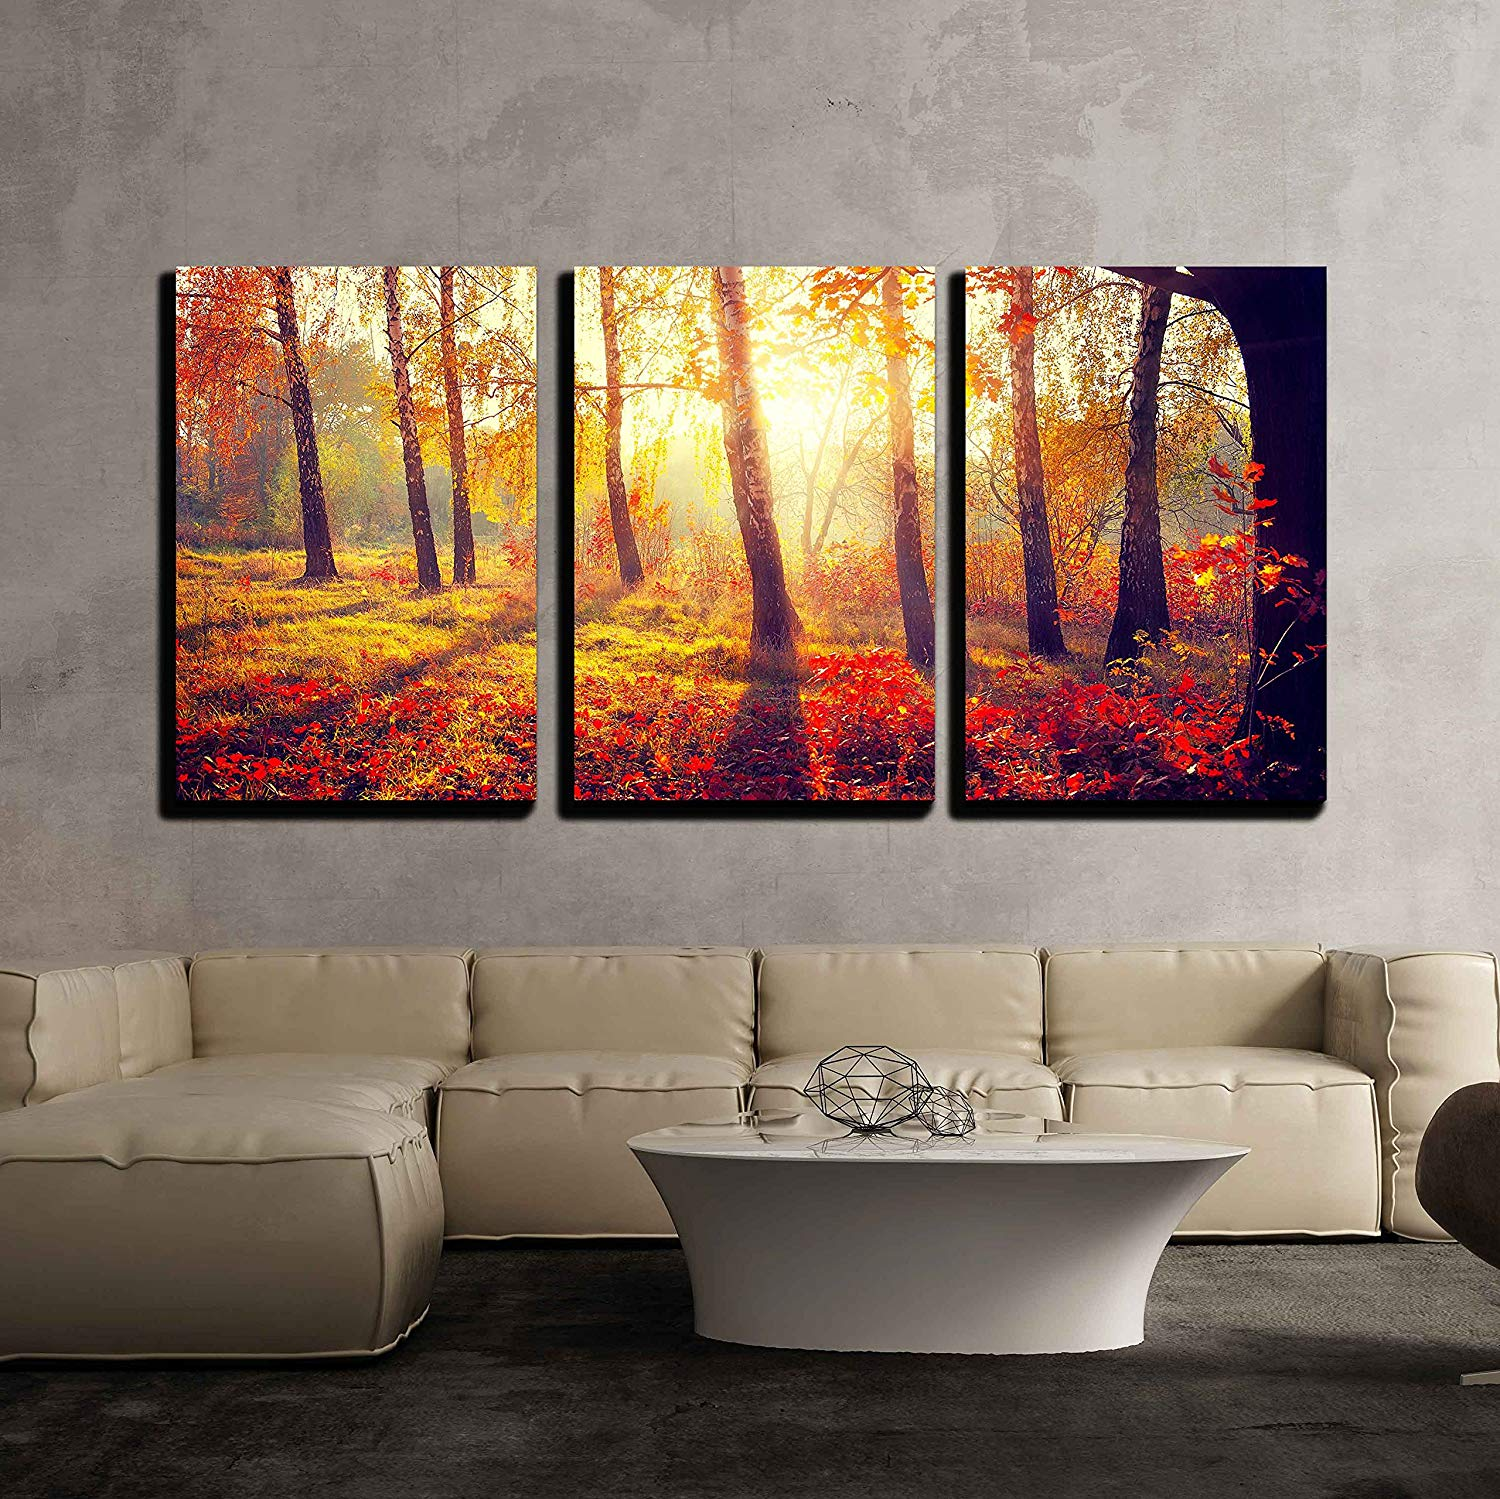 Removable Wall Mural wall26 Autumn Forest Scenery with Rays of Warm Light Illumining the Gold Foliage Self-adhesive Large Wallpaper